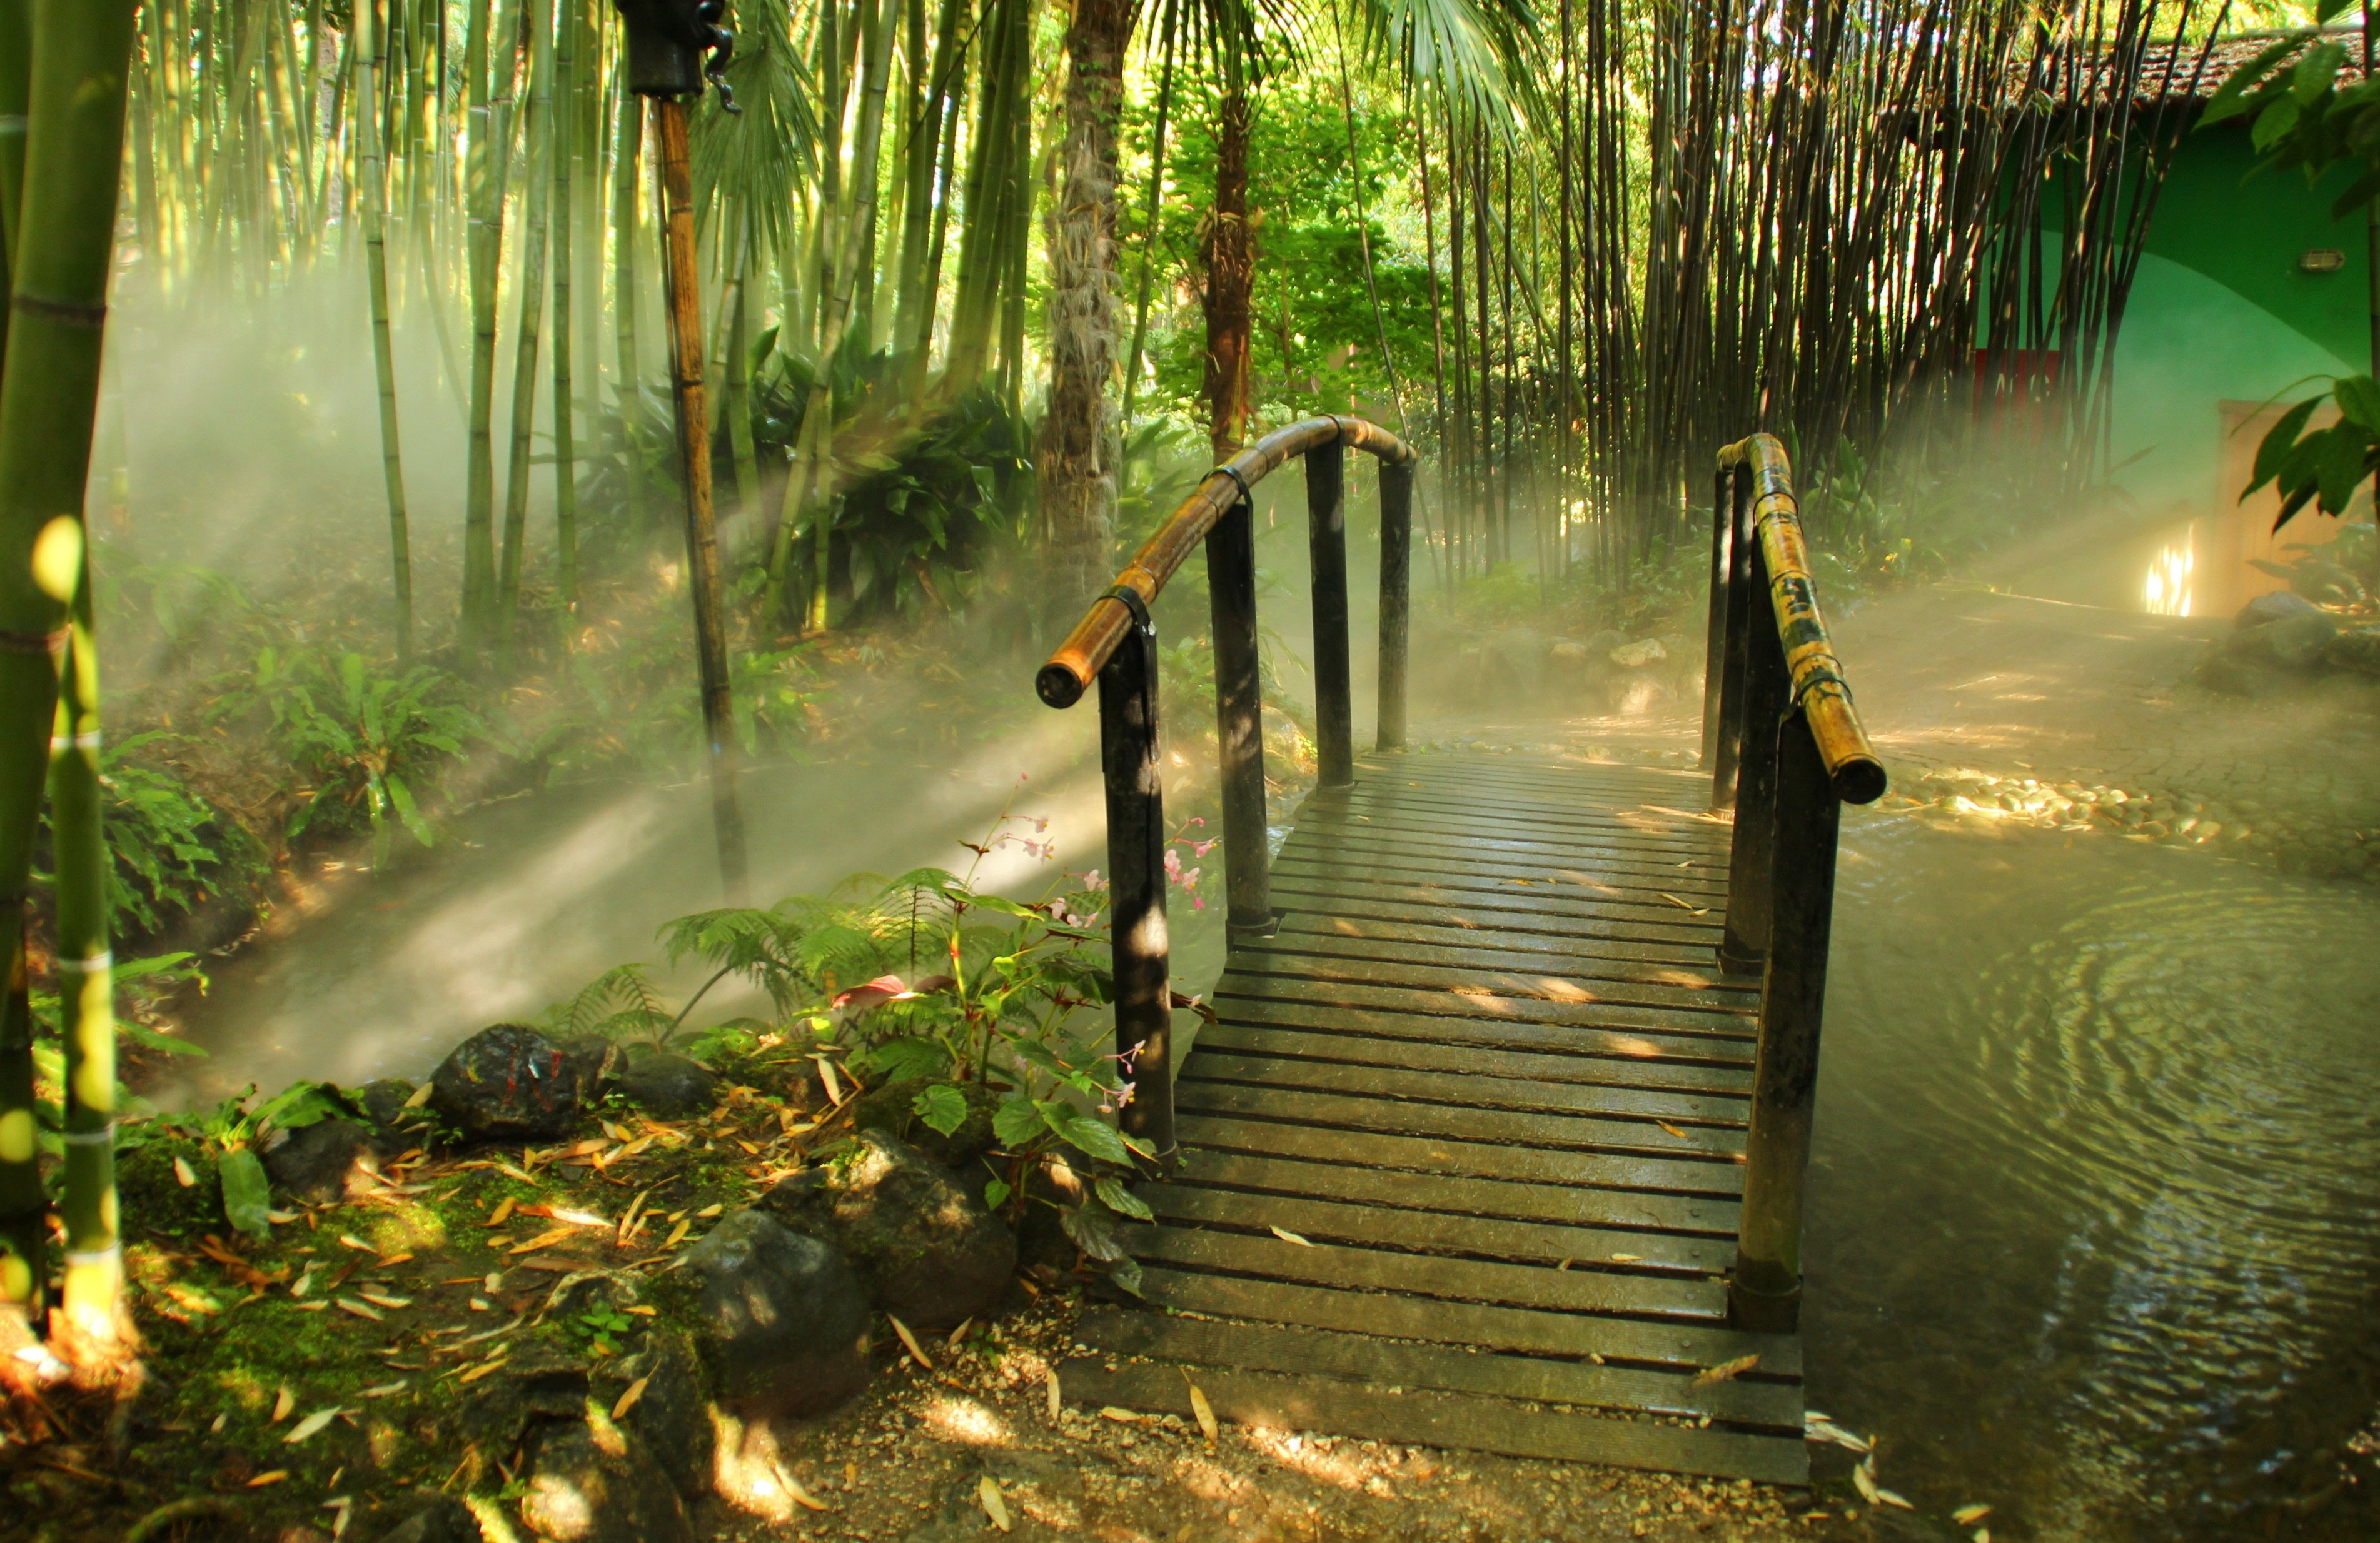 HD Bamboo Wallpapers 3806x2468